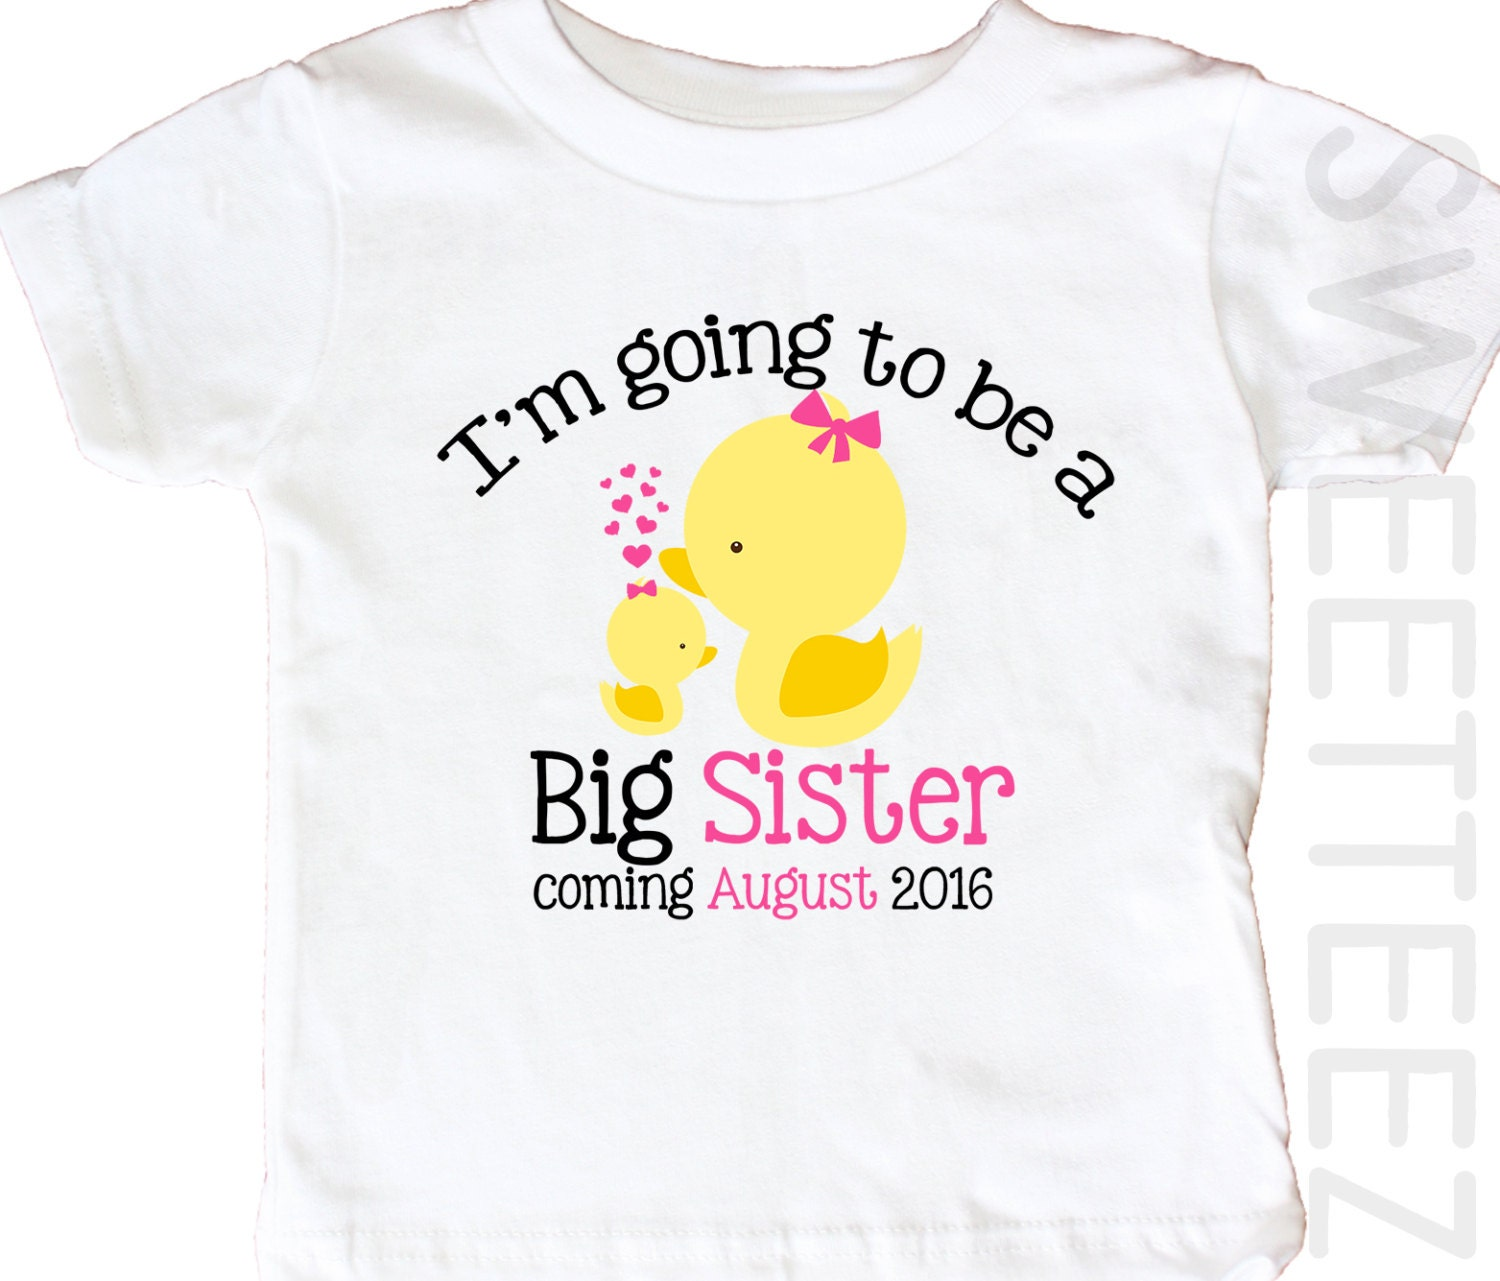 Brothers against sisters dating shirt — pic 6